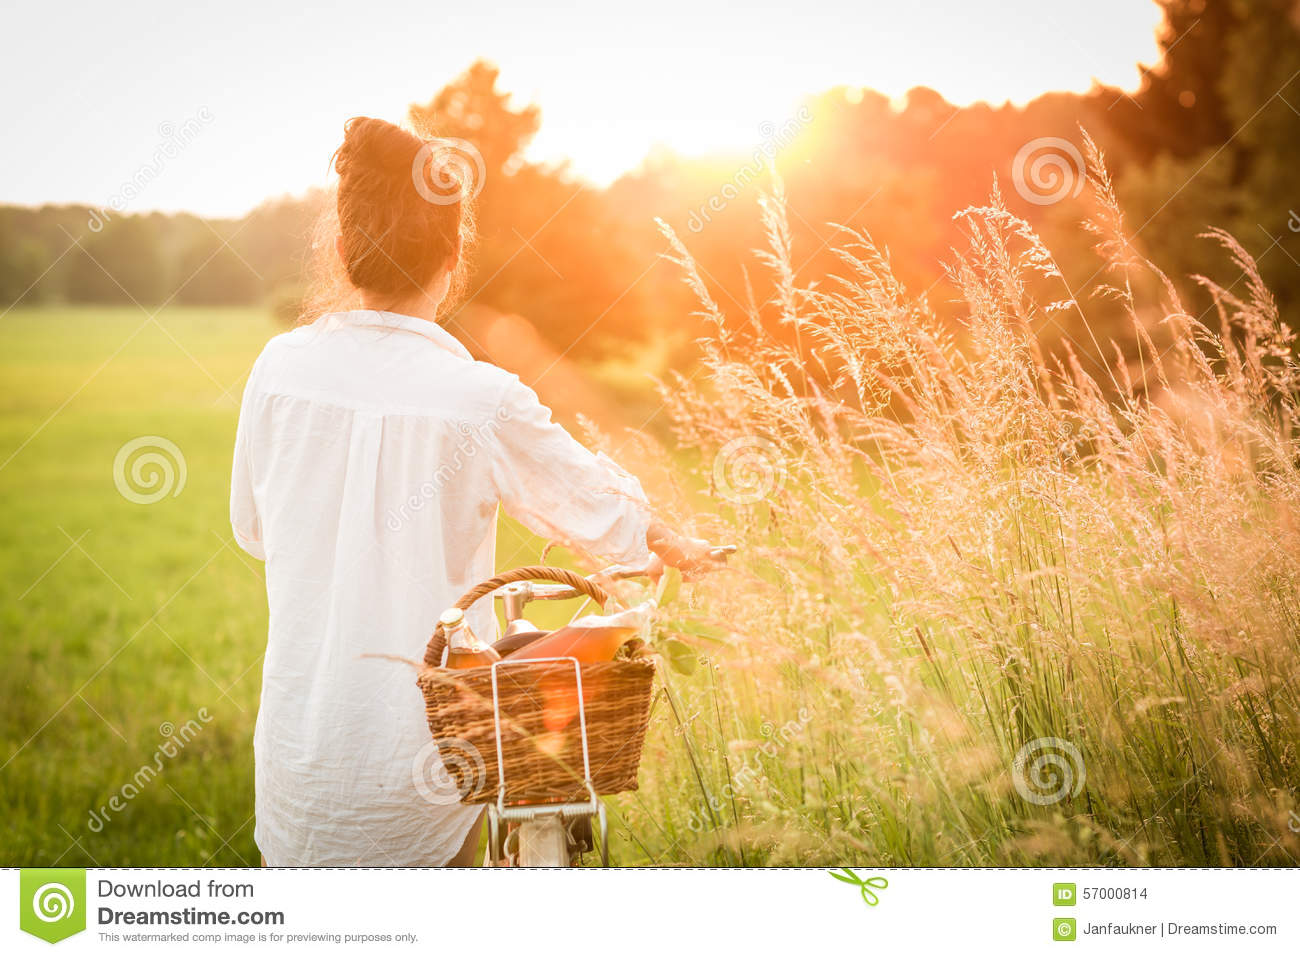 Woman riding bicycle with the basket of fresh food.